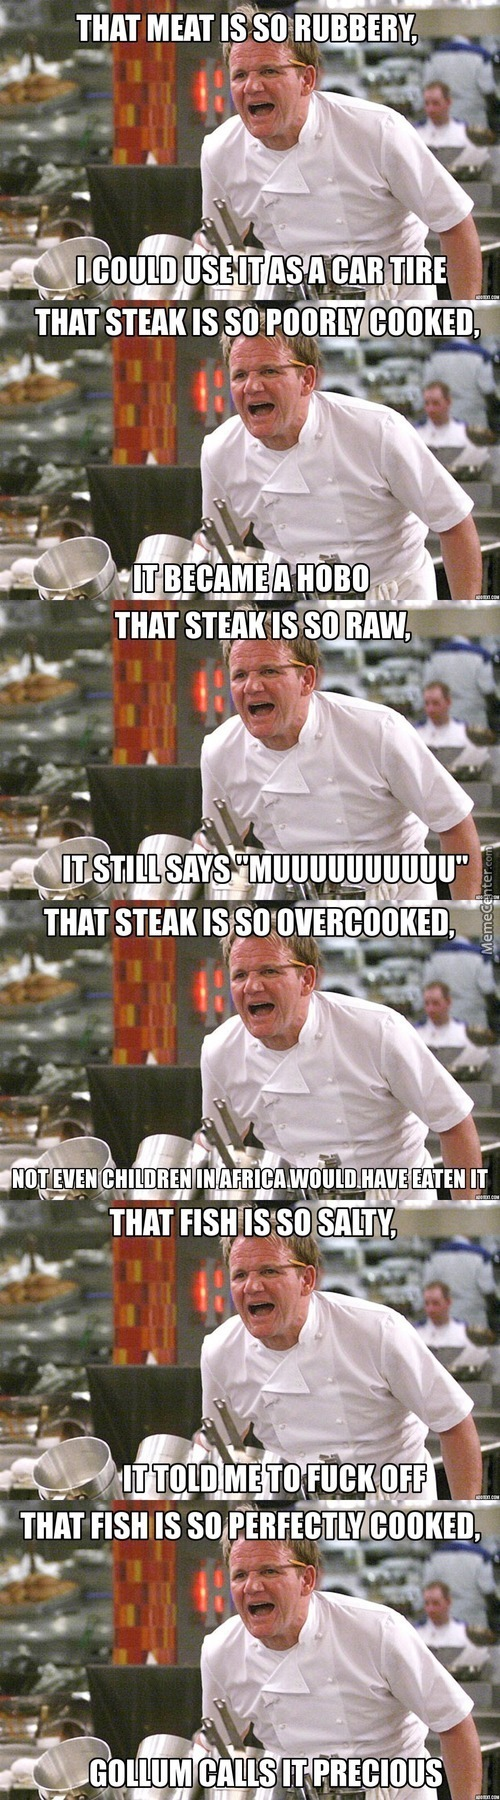 If You Can Read This, You Were Visited By Chef Ramsay.